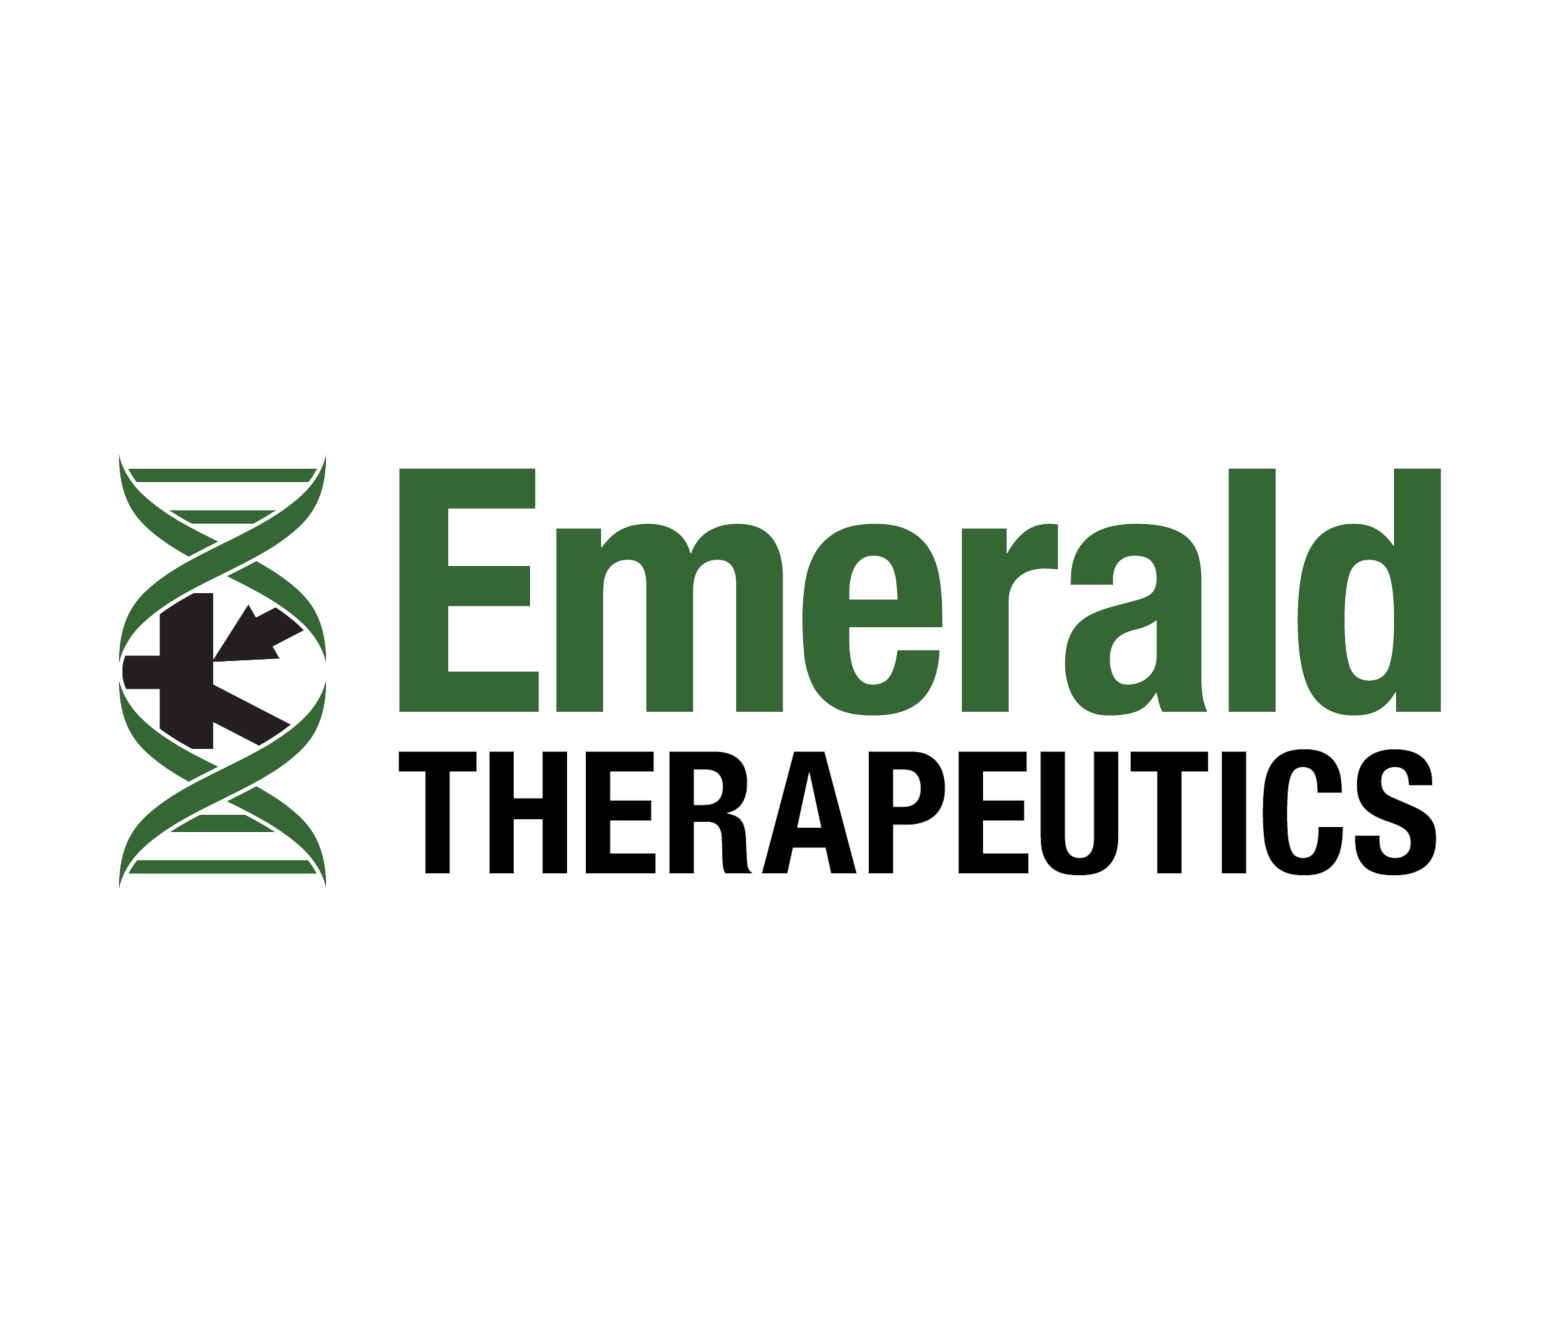 Emerald Therapeutics is an early-stage pharmaceutical company dedicated to curing persistent viral diseases.